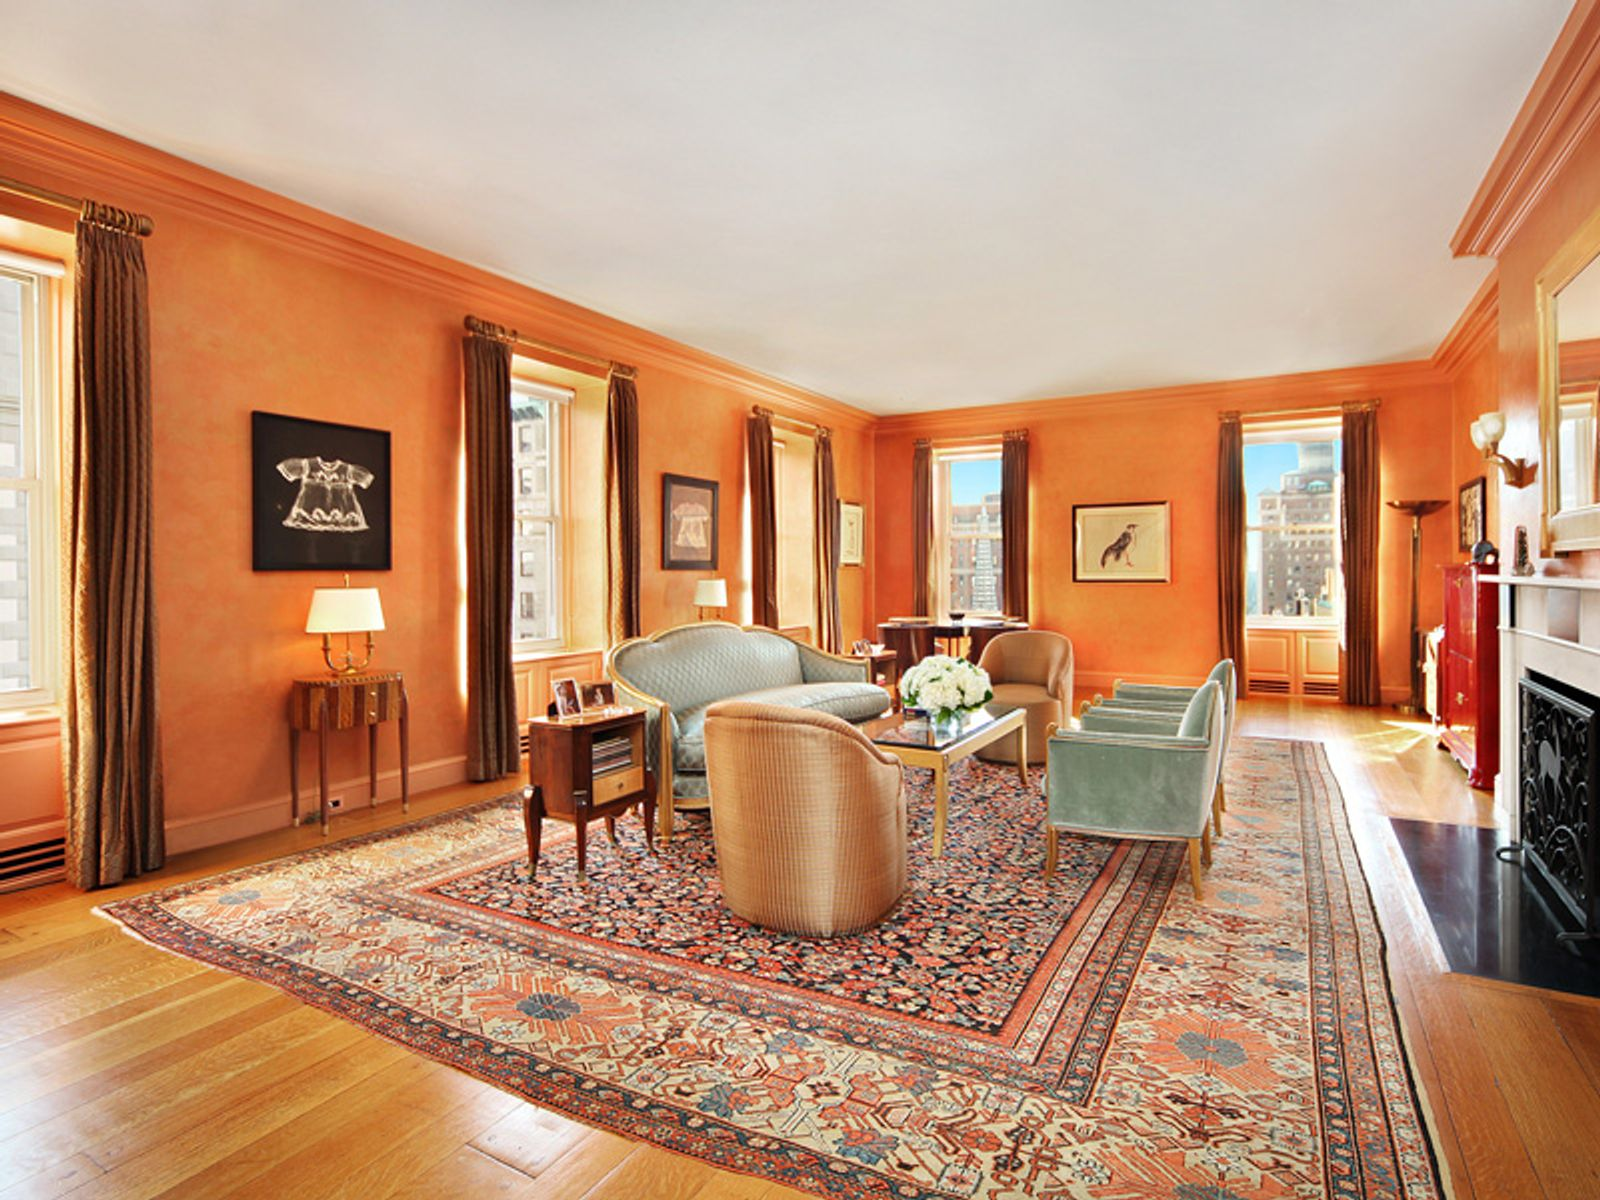 19 East 72nd Street, New York NY Cooperative - New York City Real Estate